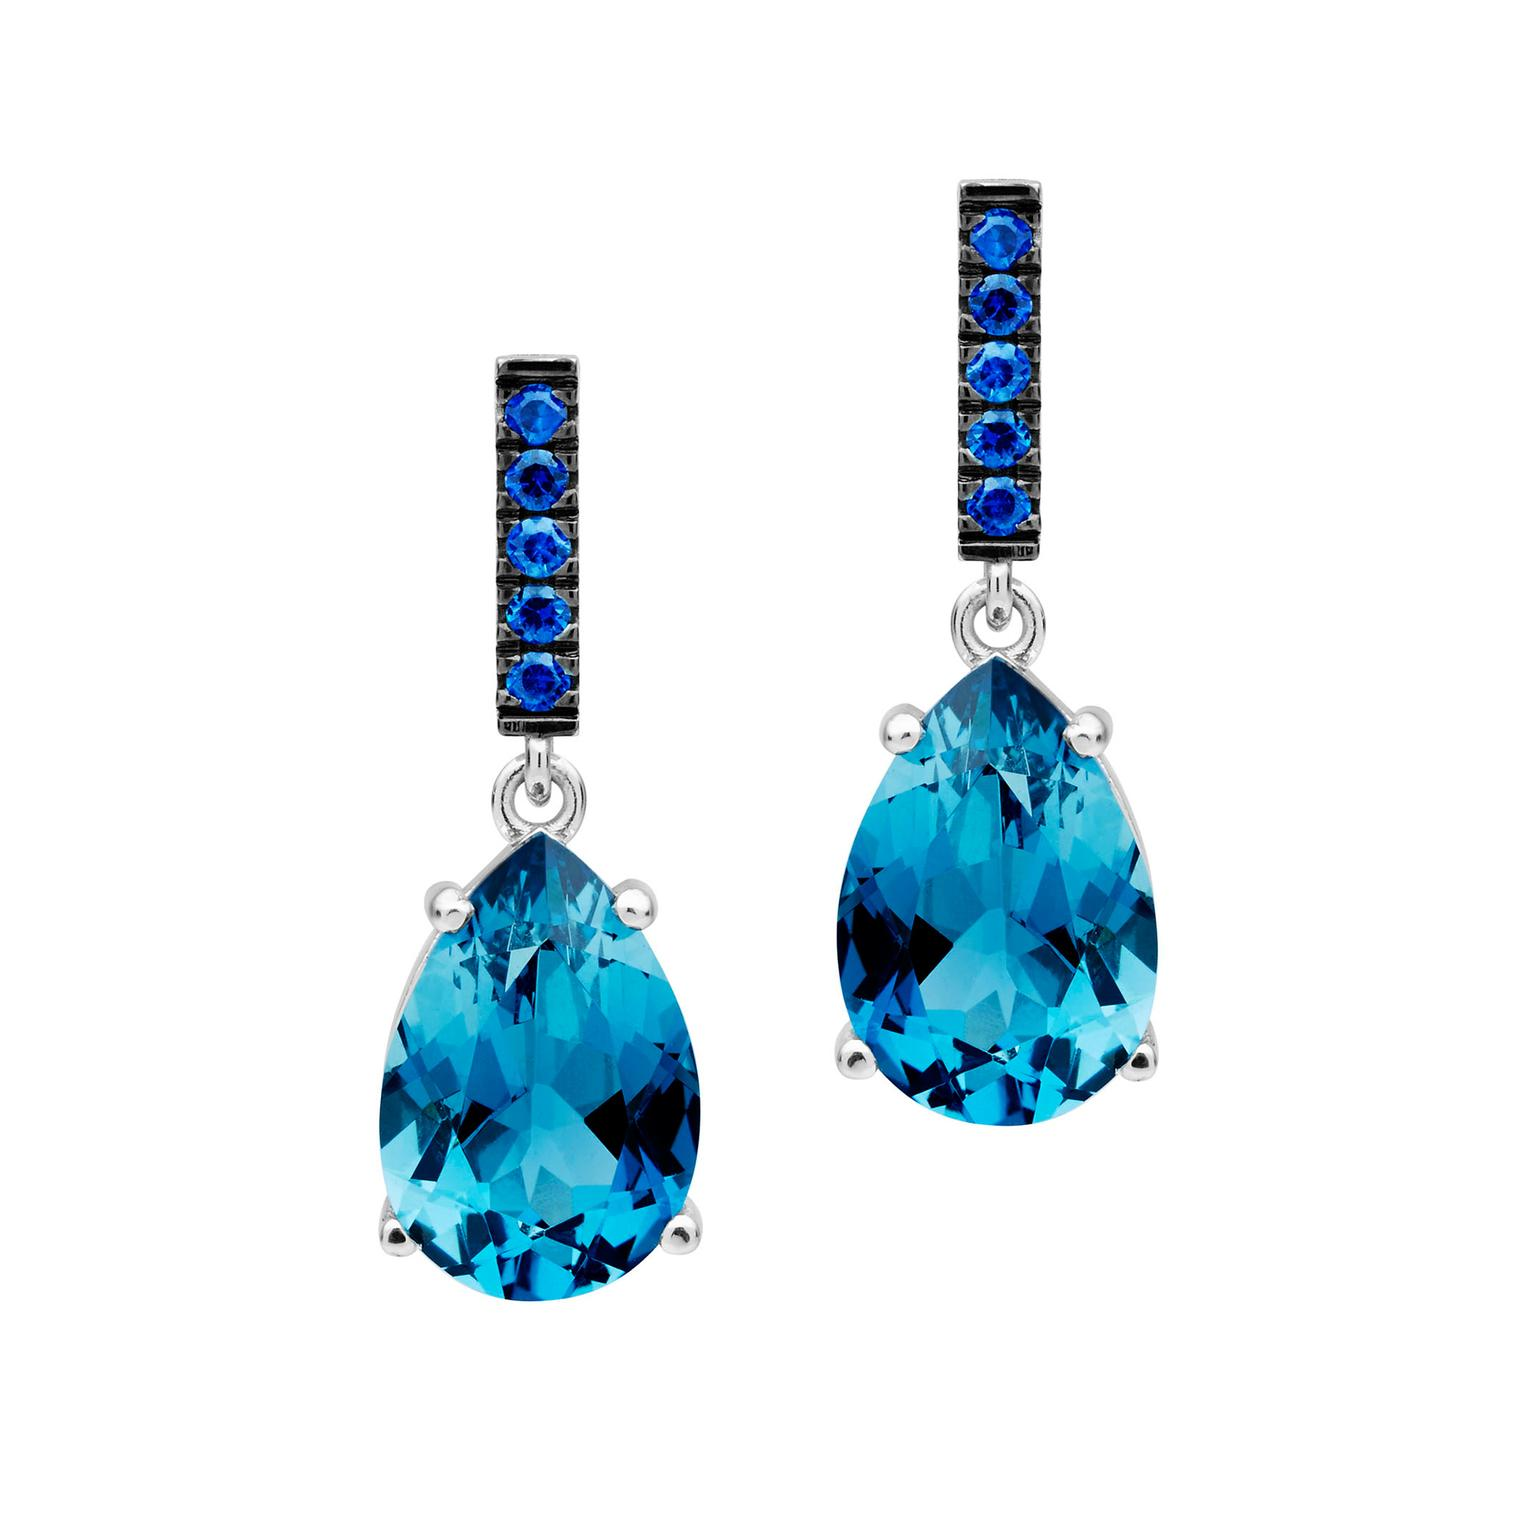 Jan Logan London blue topaz and sapphire Tivoli earrings